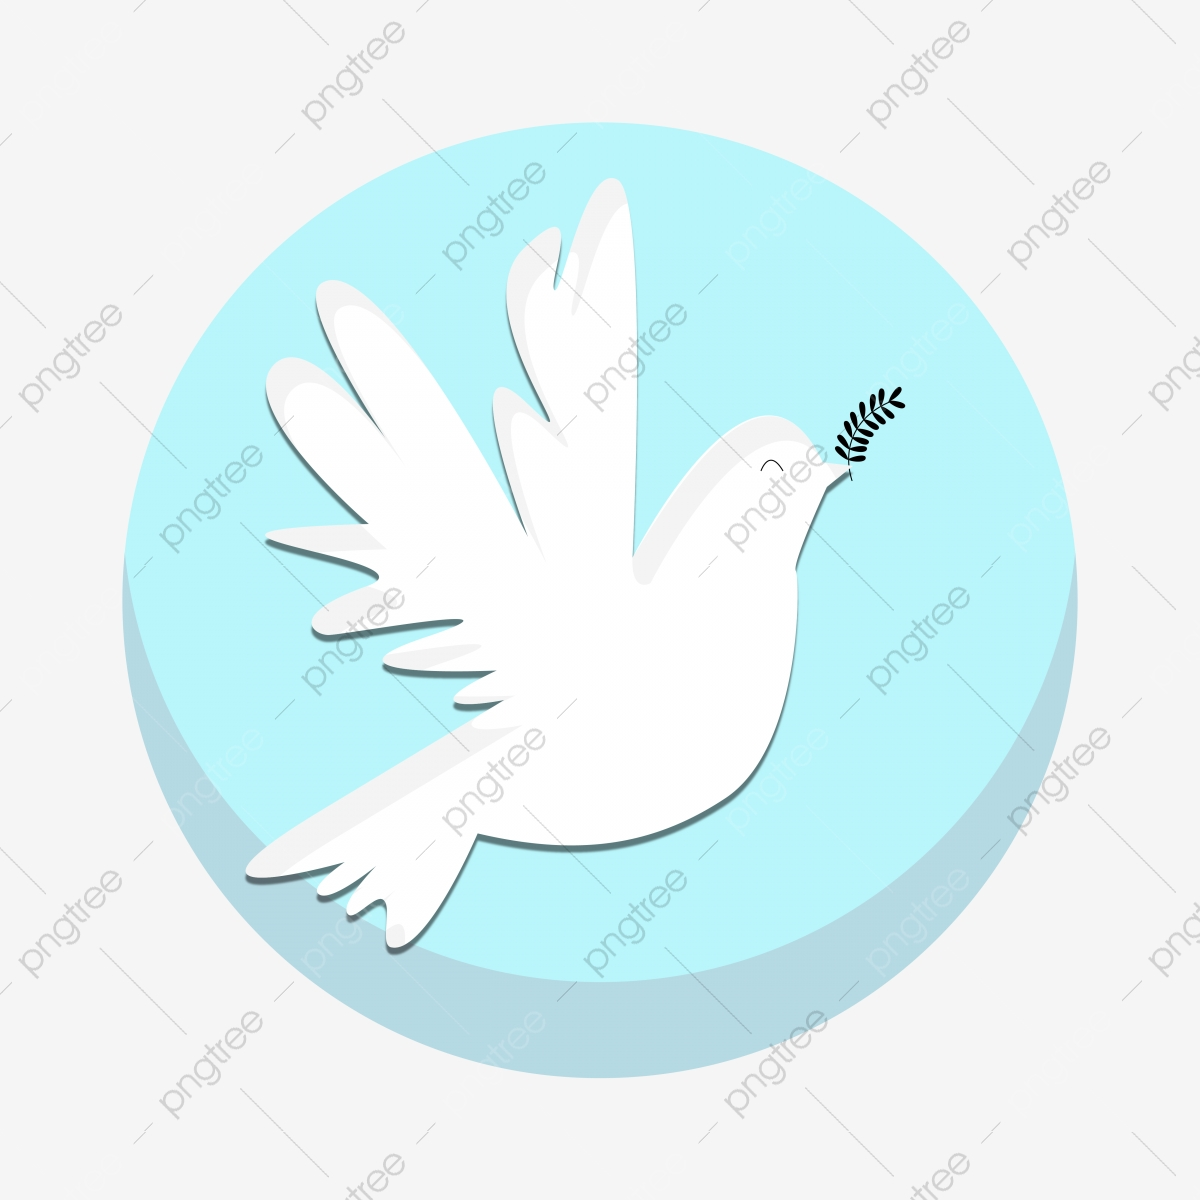 Dove Clipart Png Images Vector And Psd Files Free Download On Pngtree